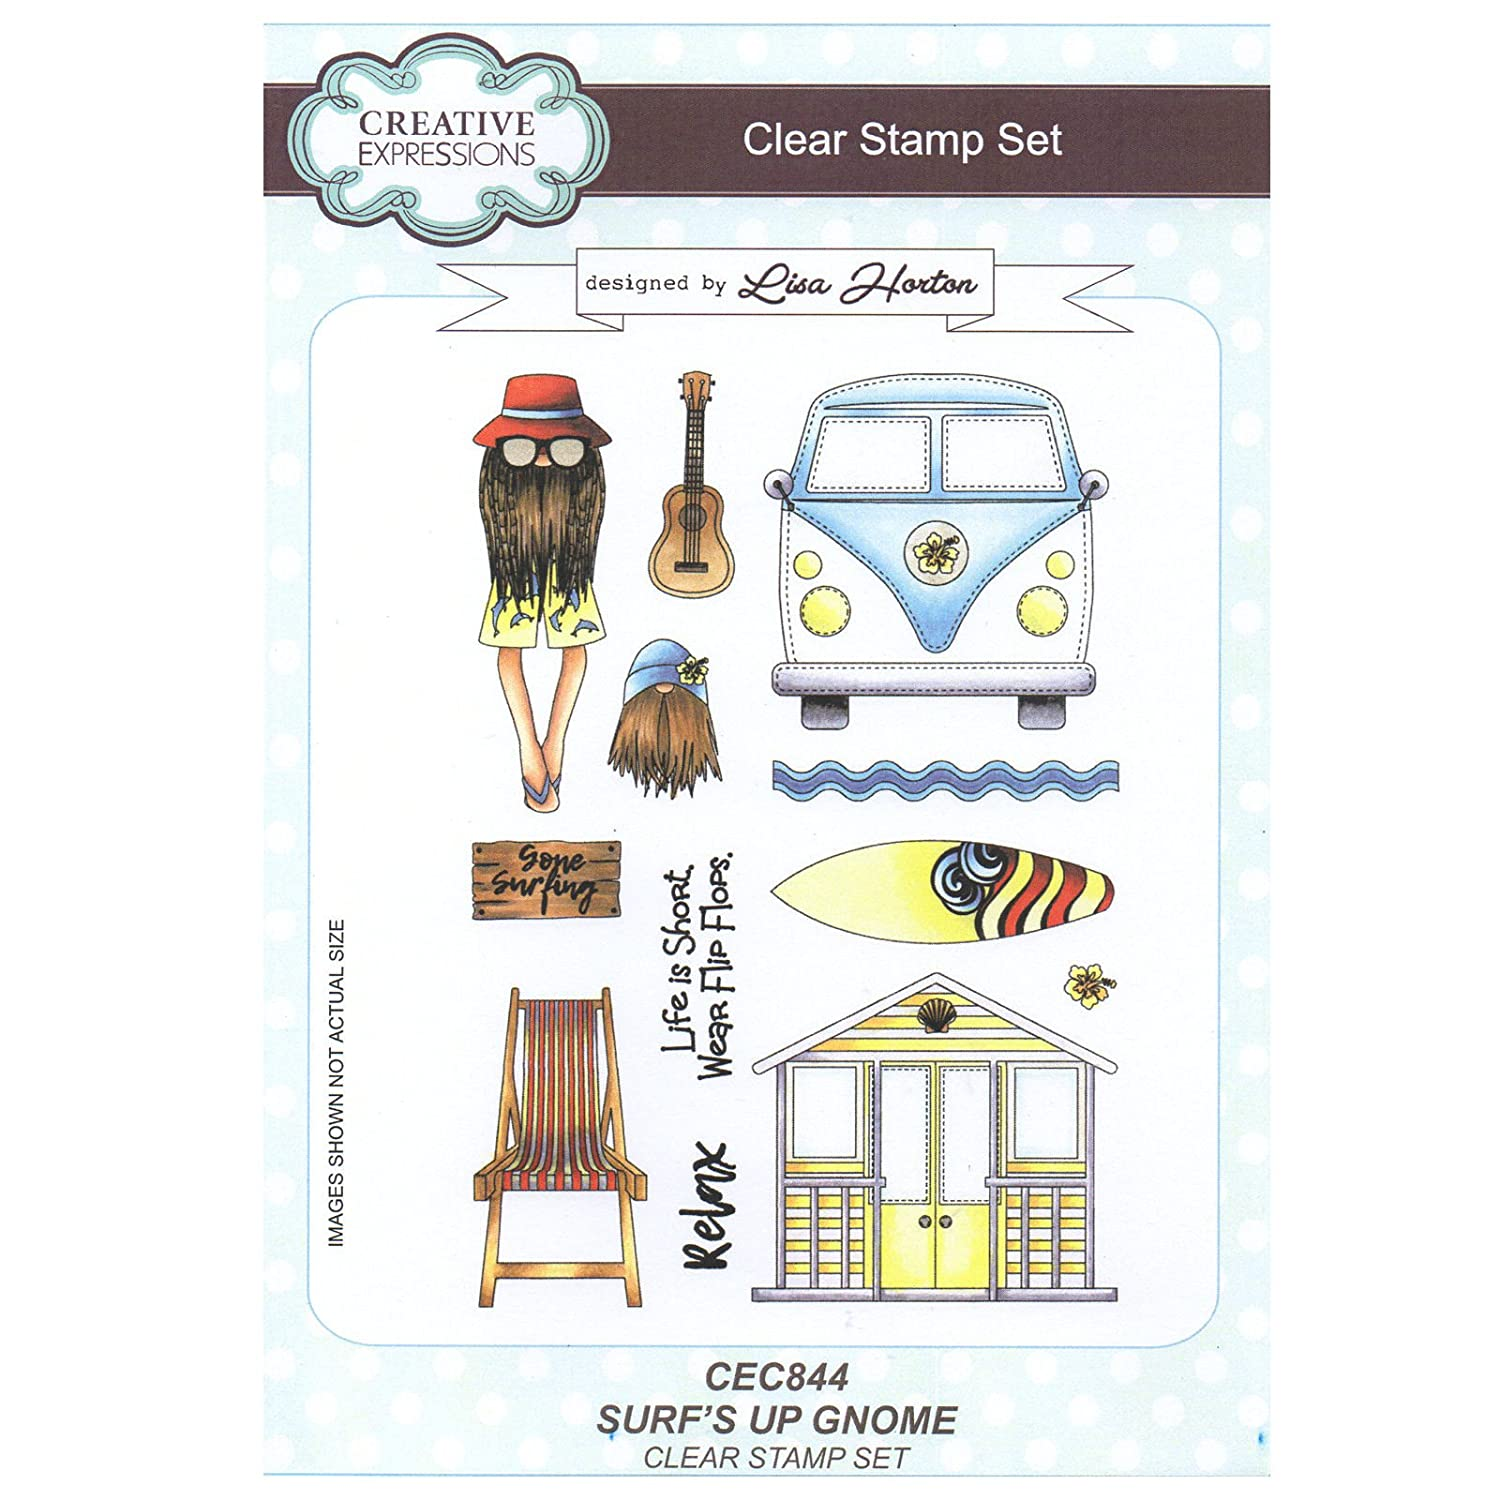 Creative Expressions Polymer Stamp Set, A5 CEC844